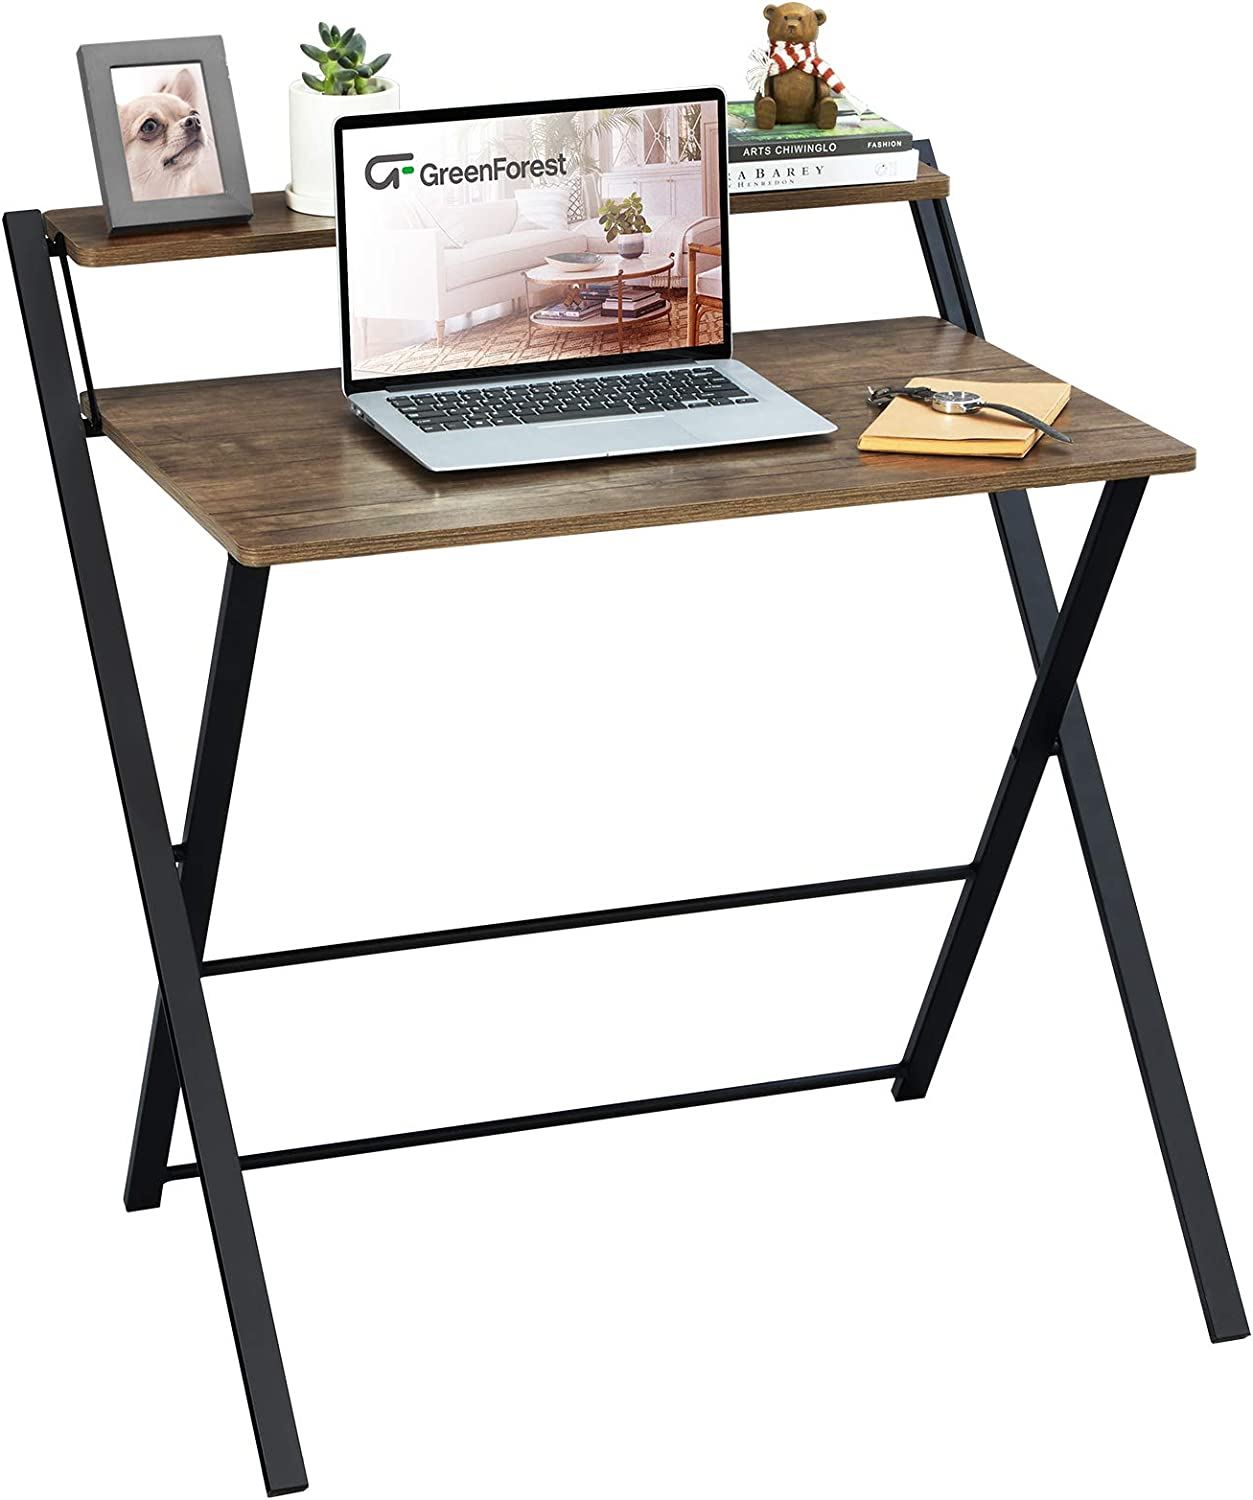 GreenForest Folding Computer Desk No Assembly Required 2 Tier Computer Desk with Shelf Space Saving Small Foldable Table Workstation, Brown